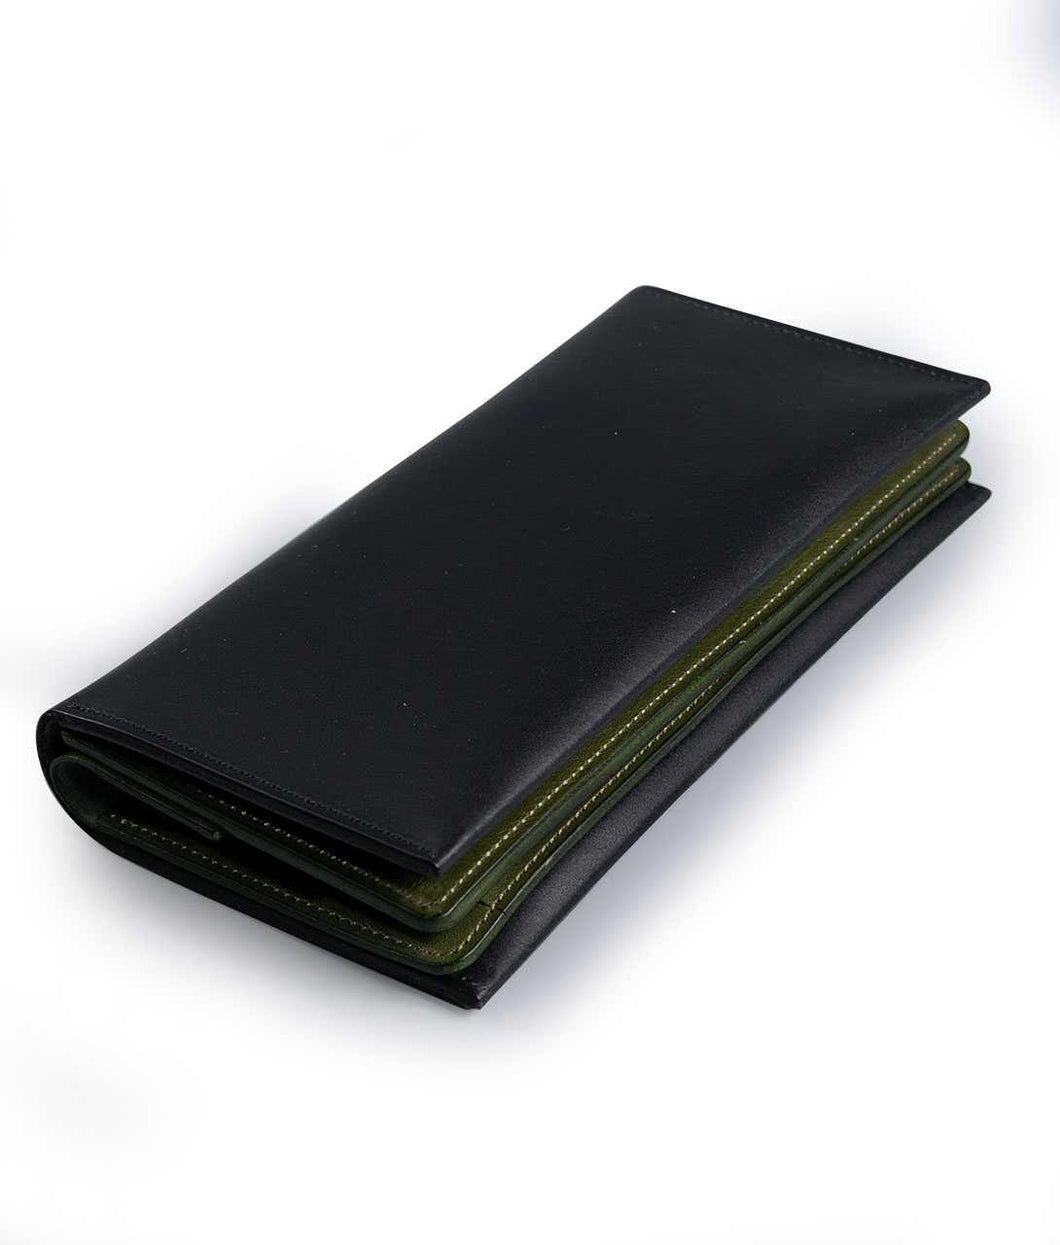 〈LIM DESIGN〉LONG WALLET / ロングウォレット (BLACK×GREEN)